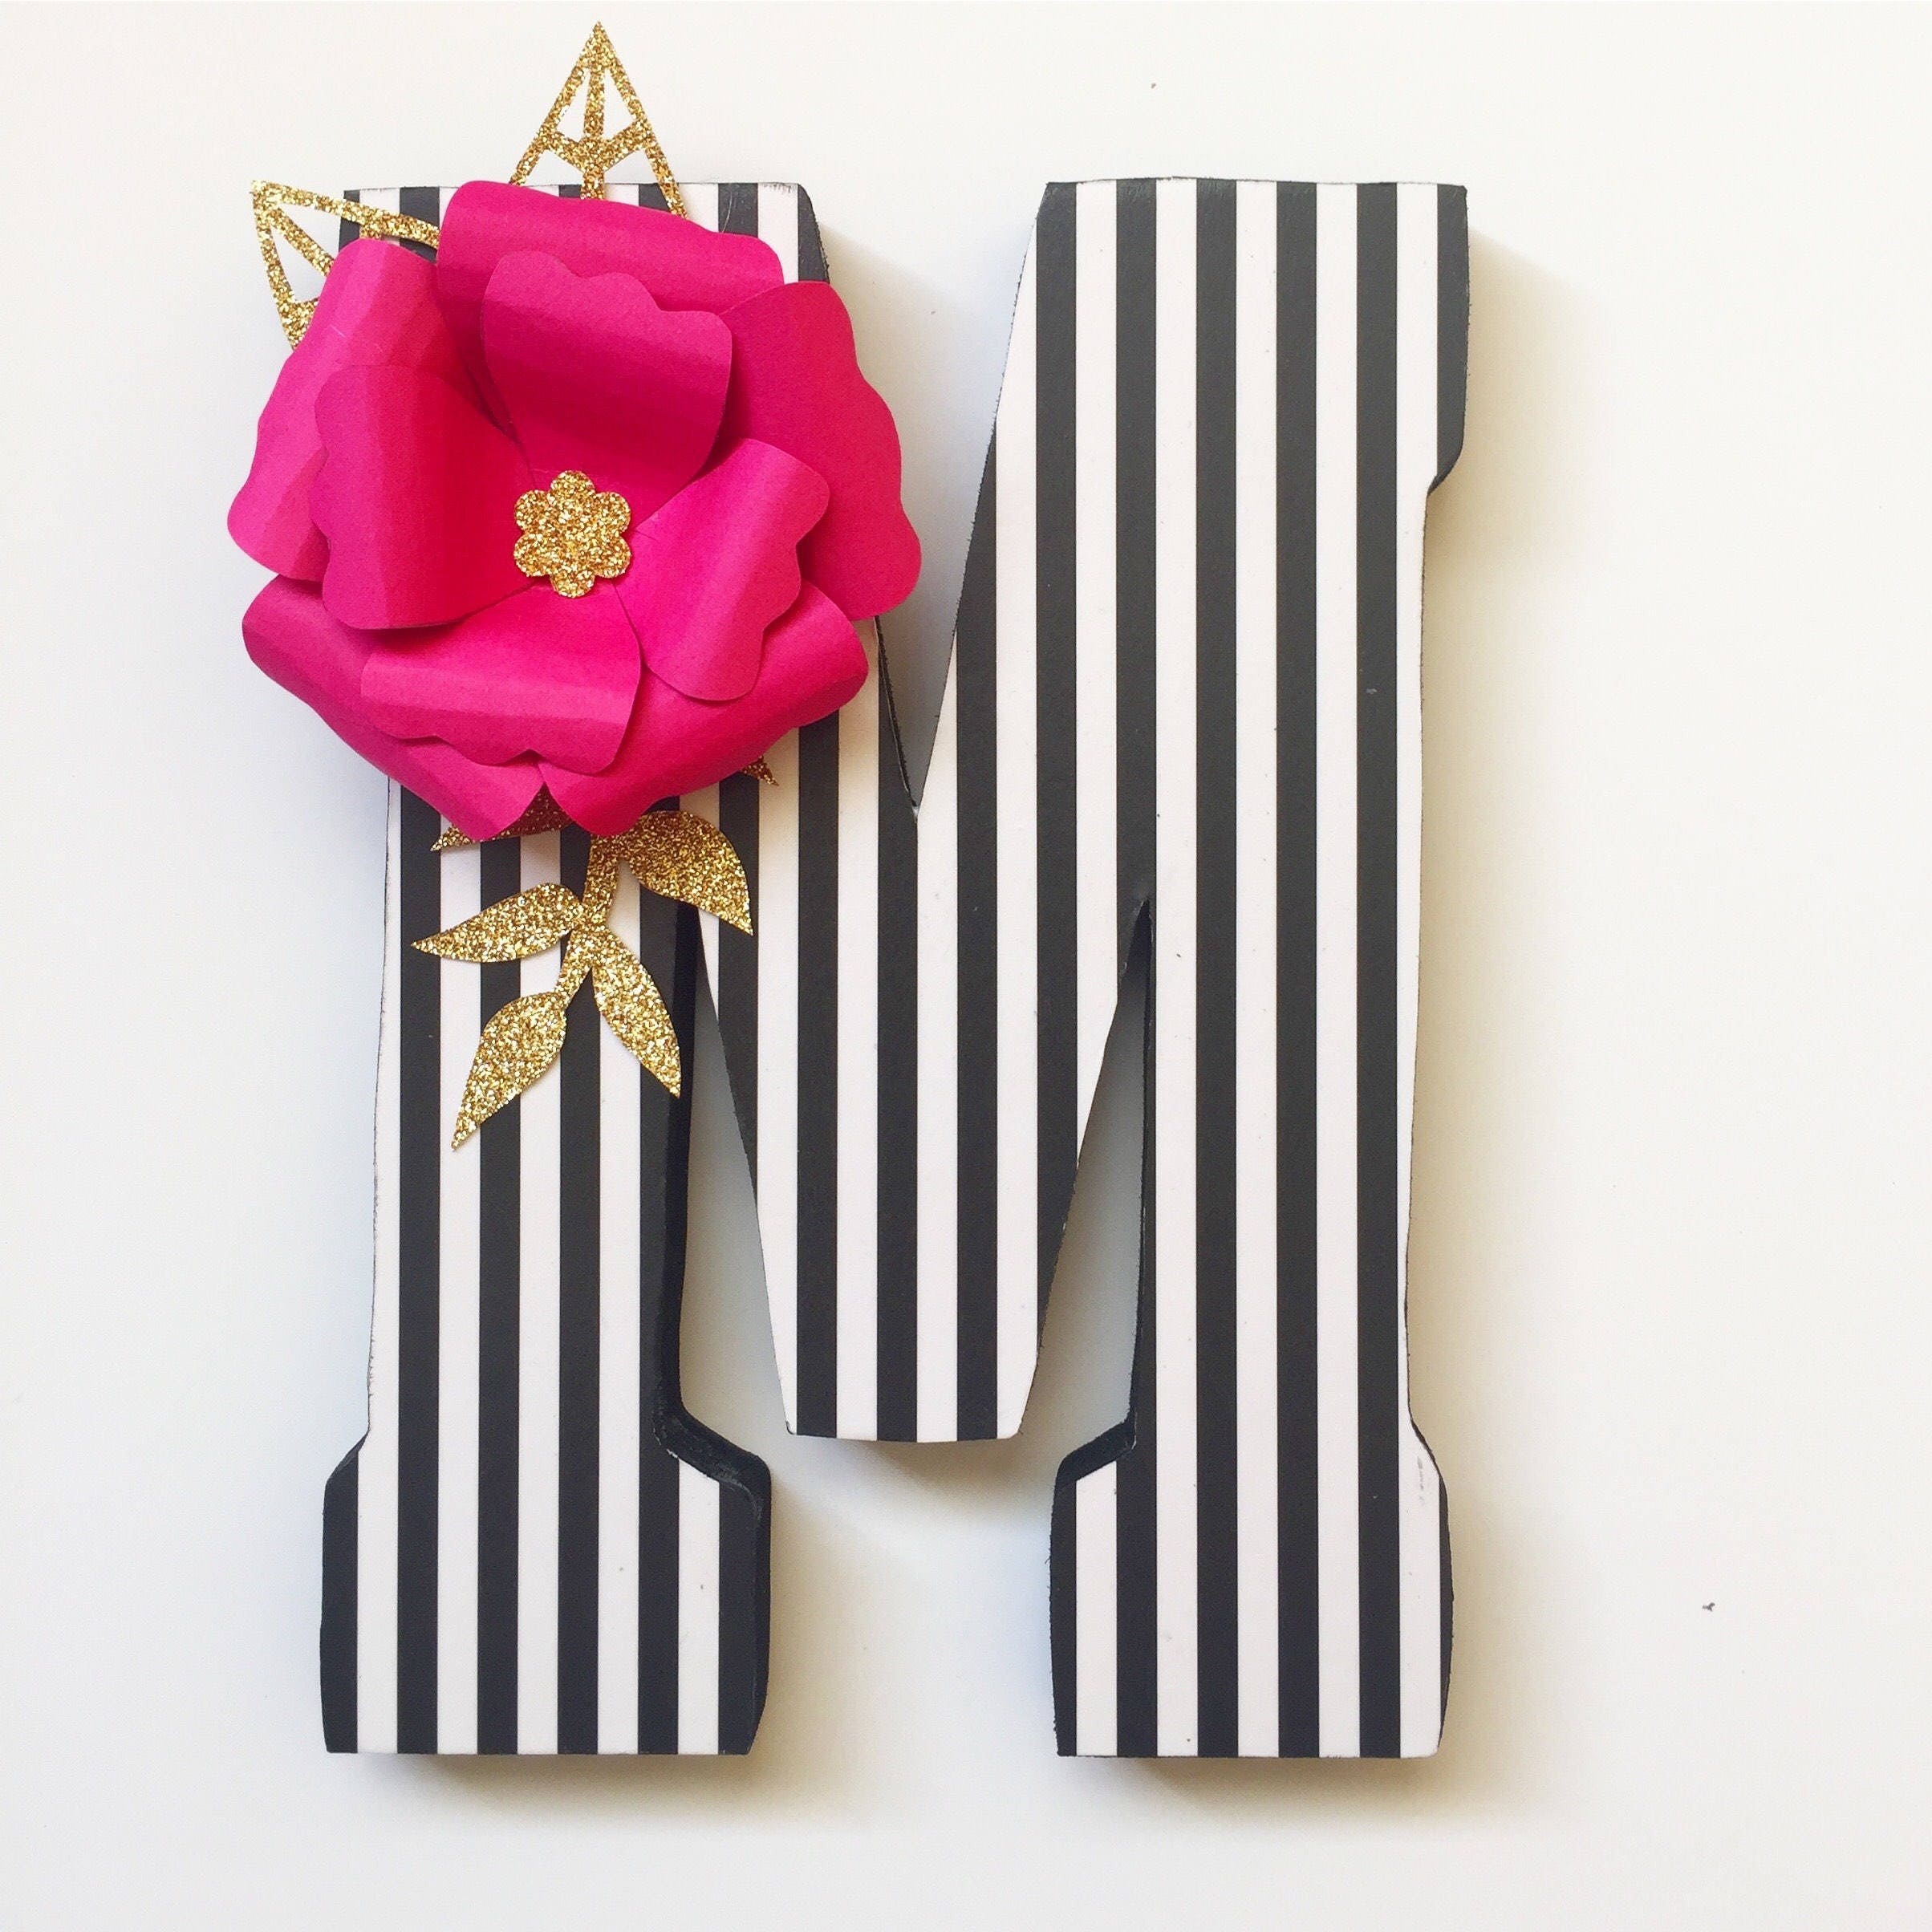 Kate Spade Inspired Letter Home Decor Party Decorations